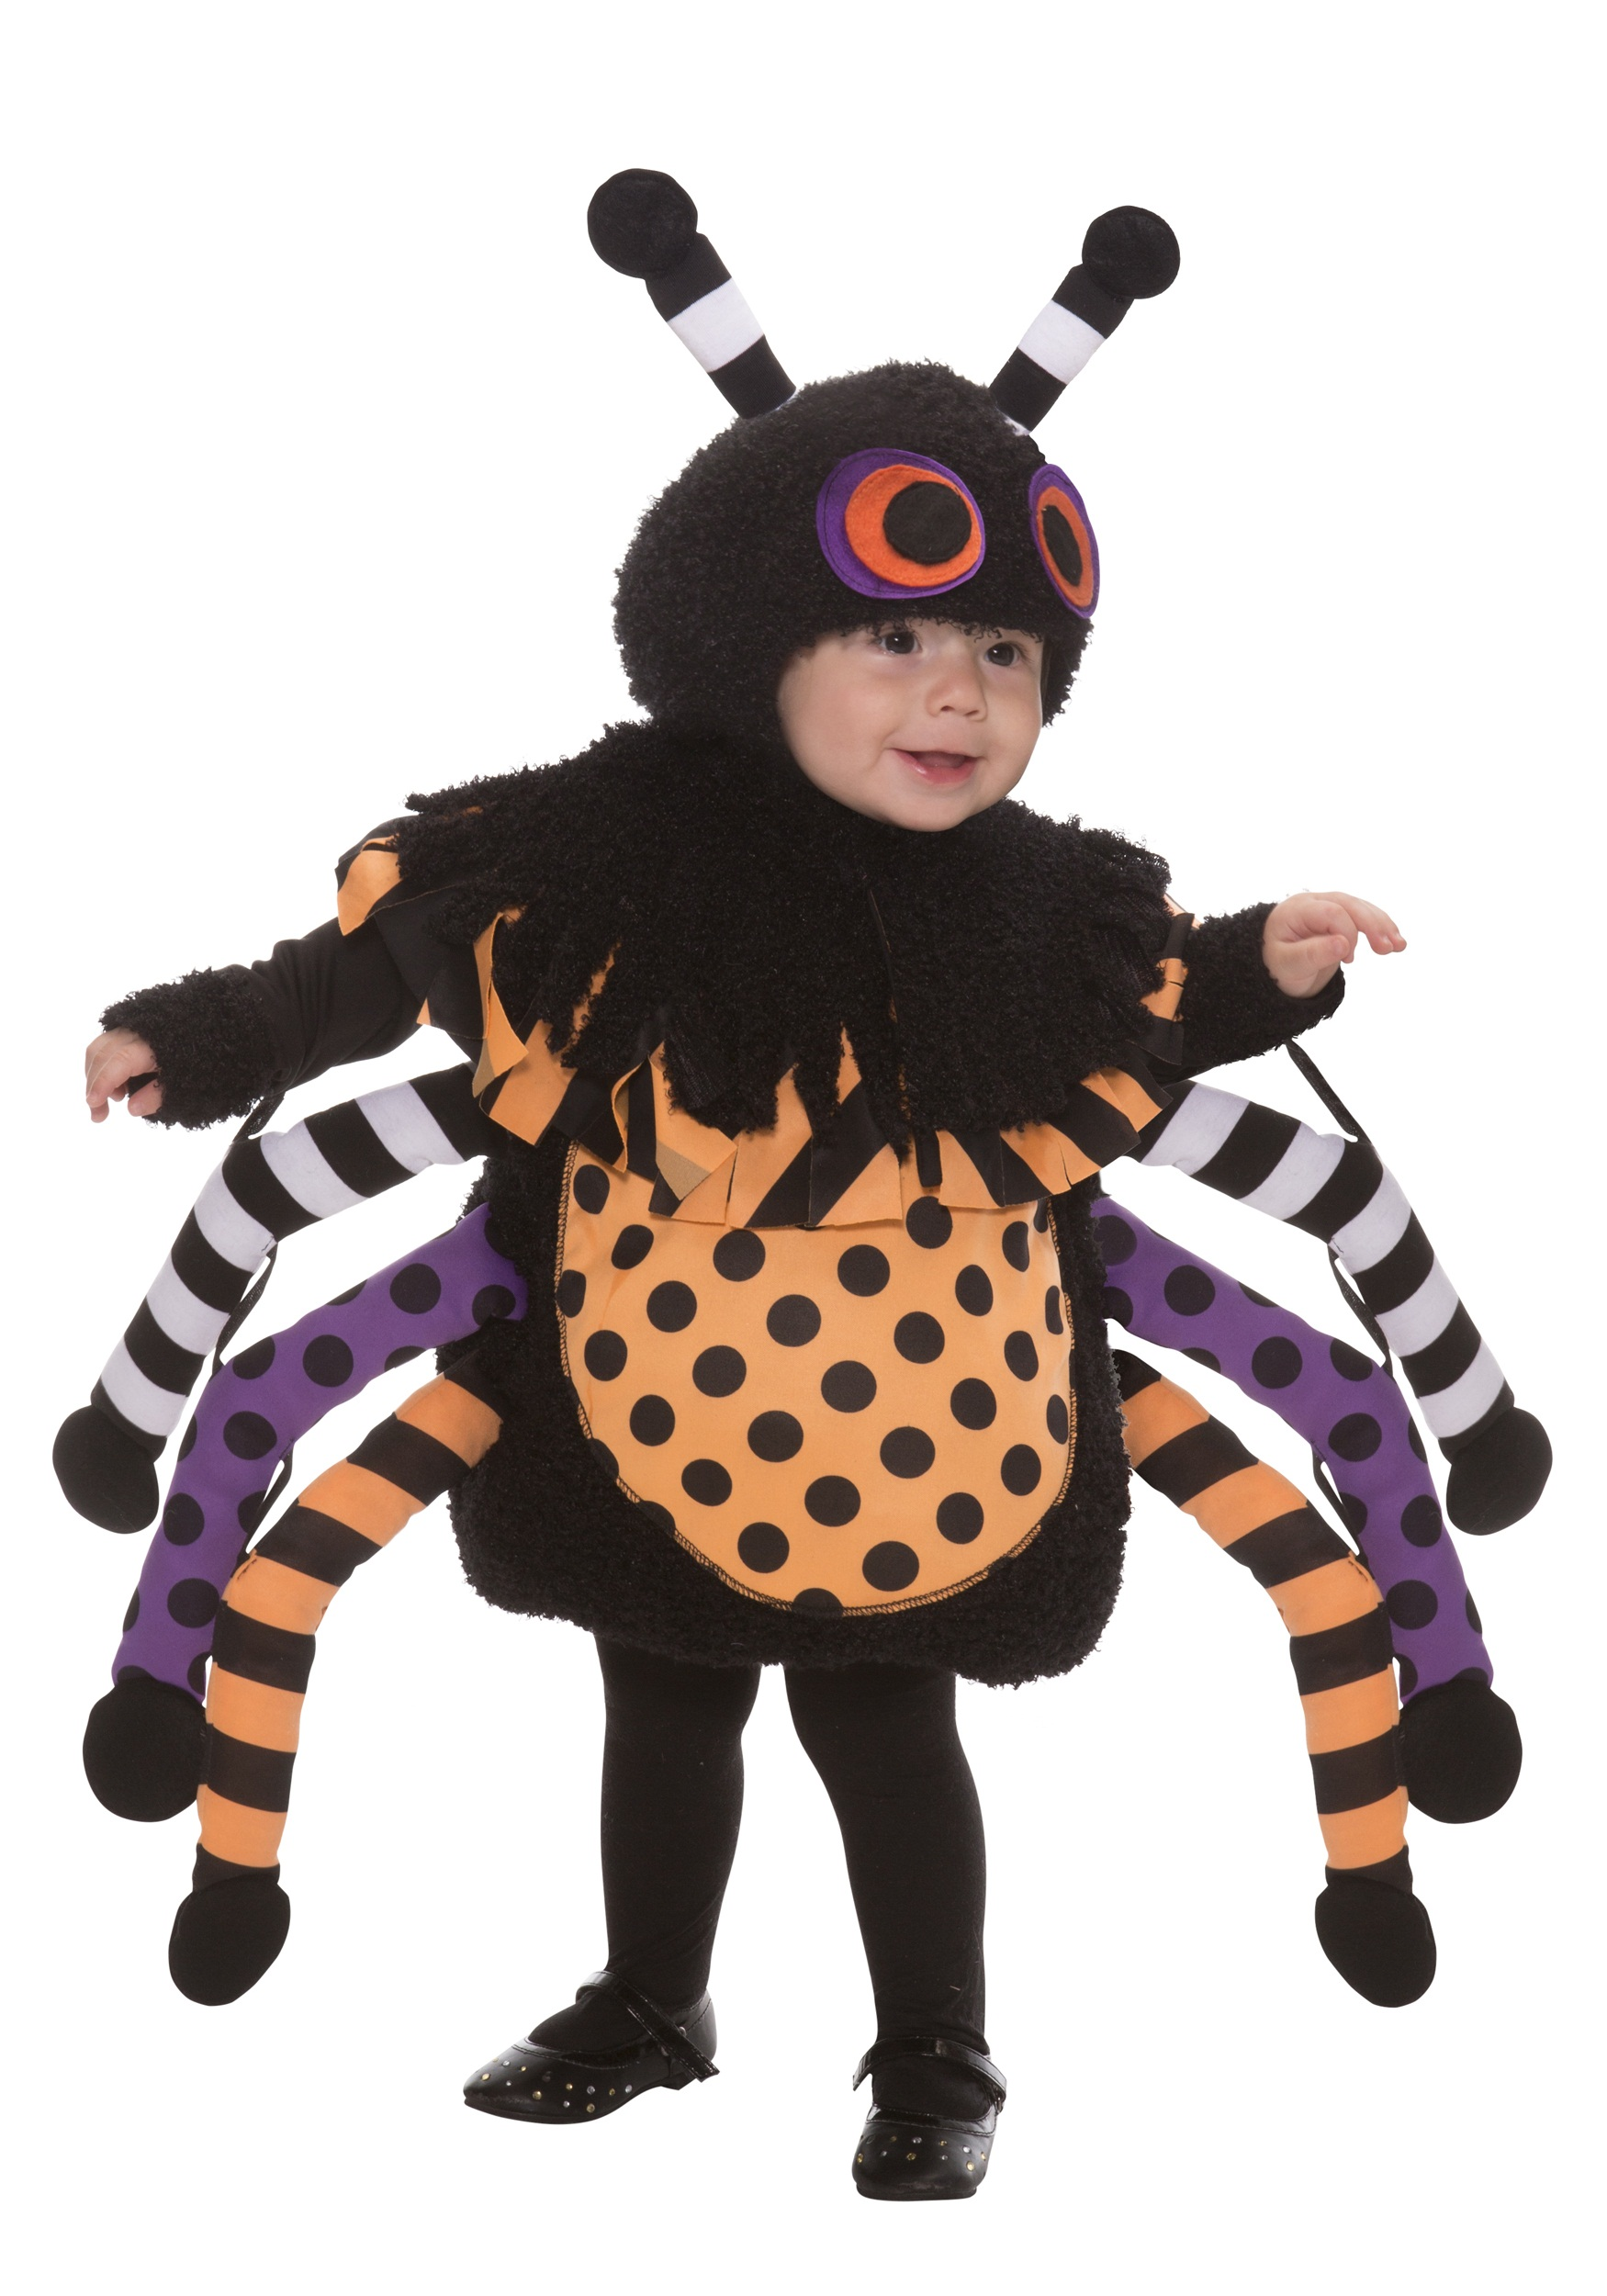 Toddler Polka Dot Spider Costume  sc 1 st  Halloween Costumes : spider costume for kids  - Germanpascual.Com